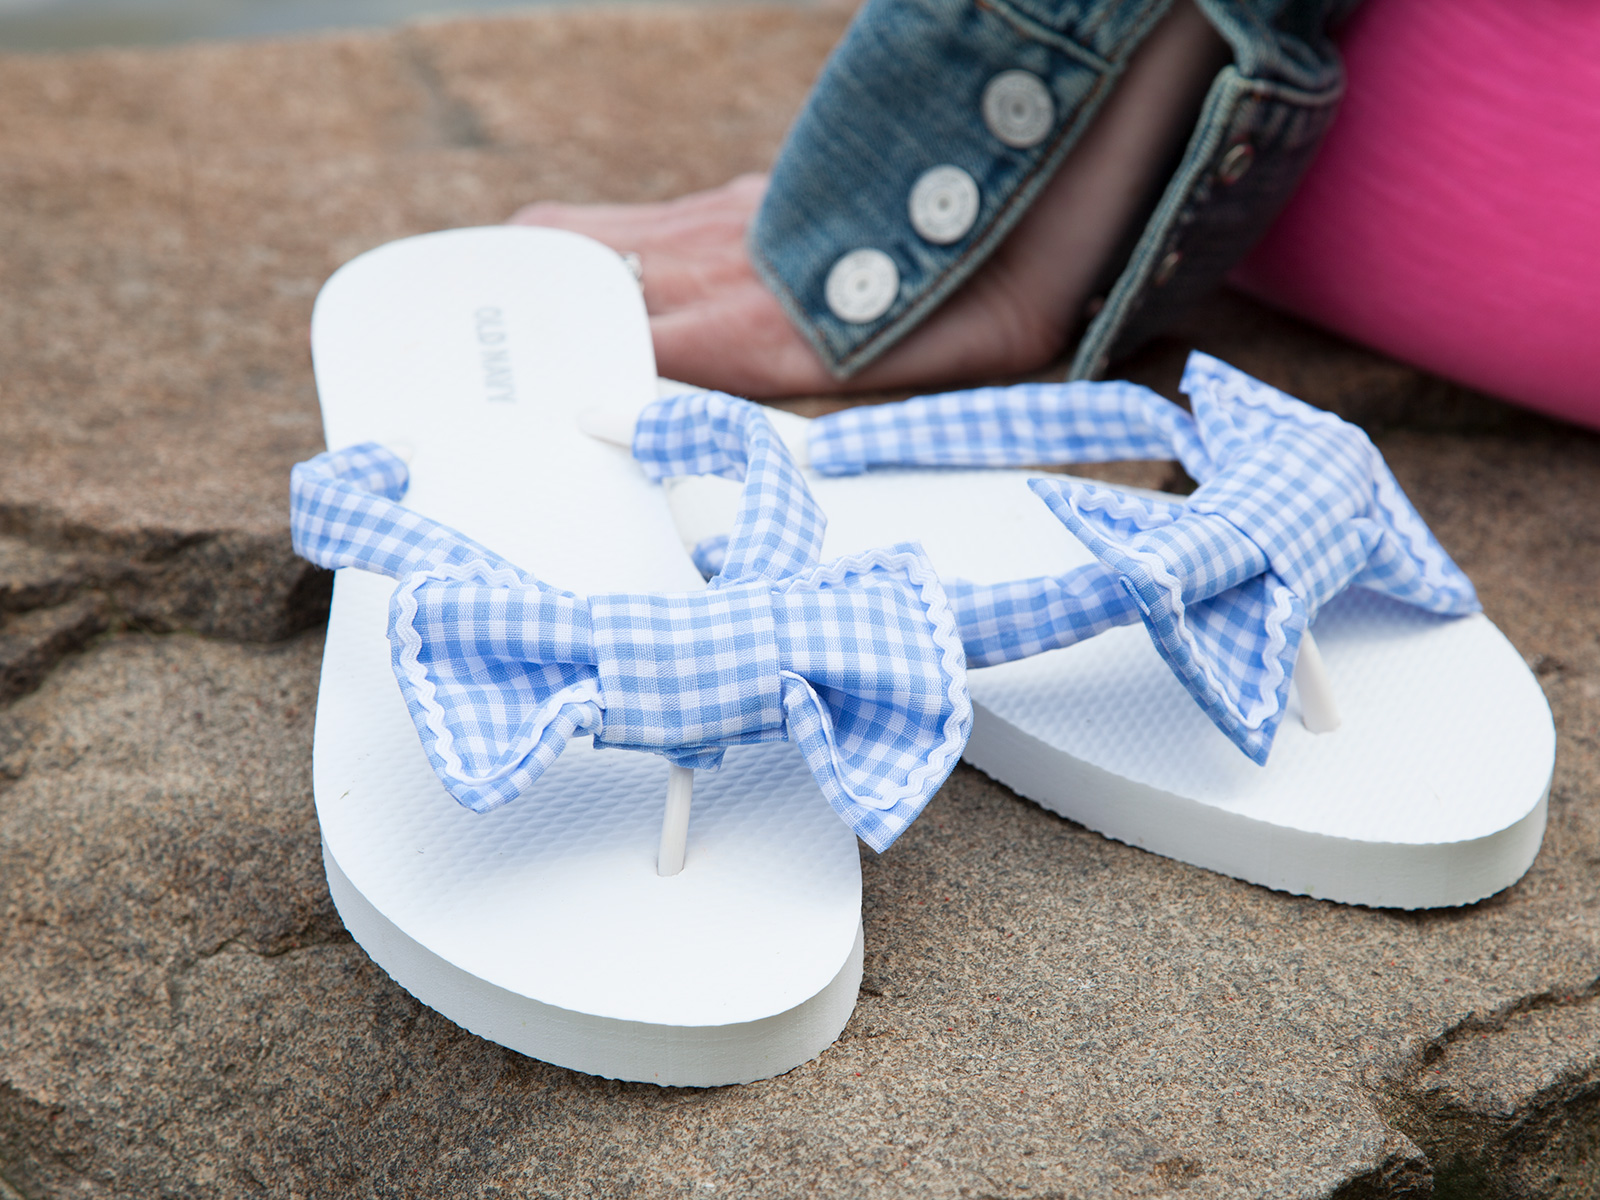 Gingham Flip Flops DIY Photo 2